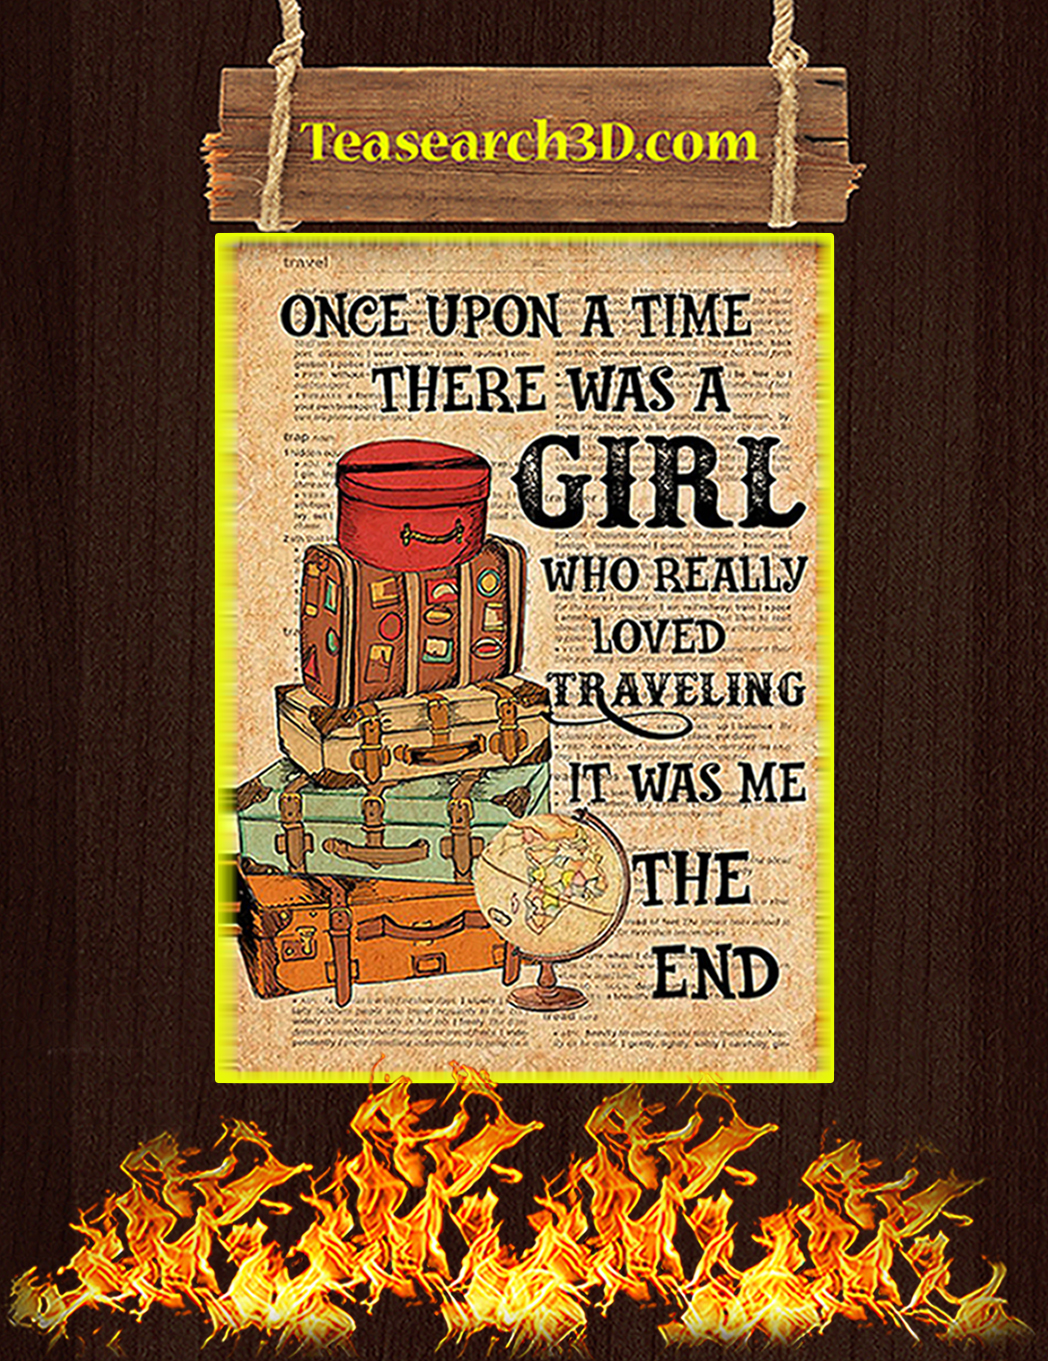 Once upon a time there was a girl who really loved traveling poster A1